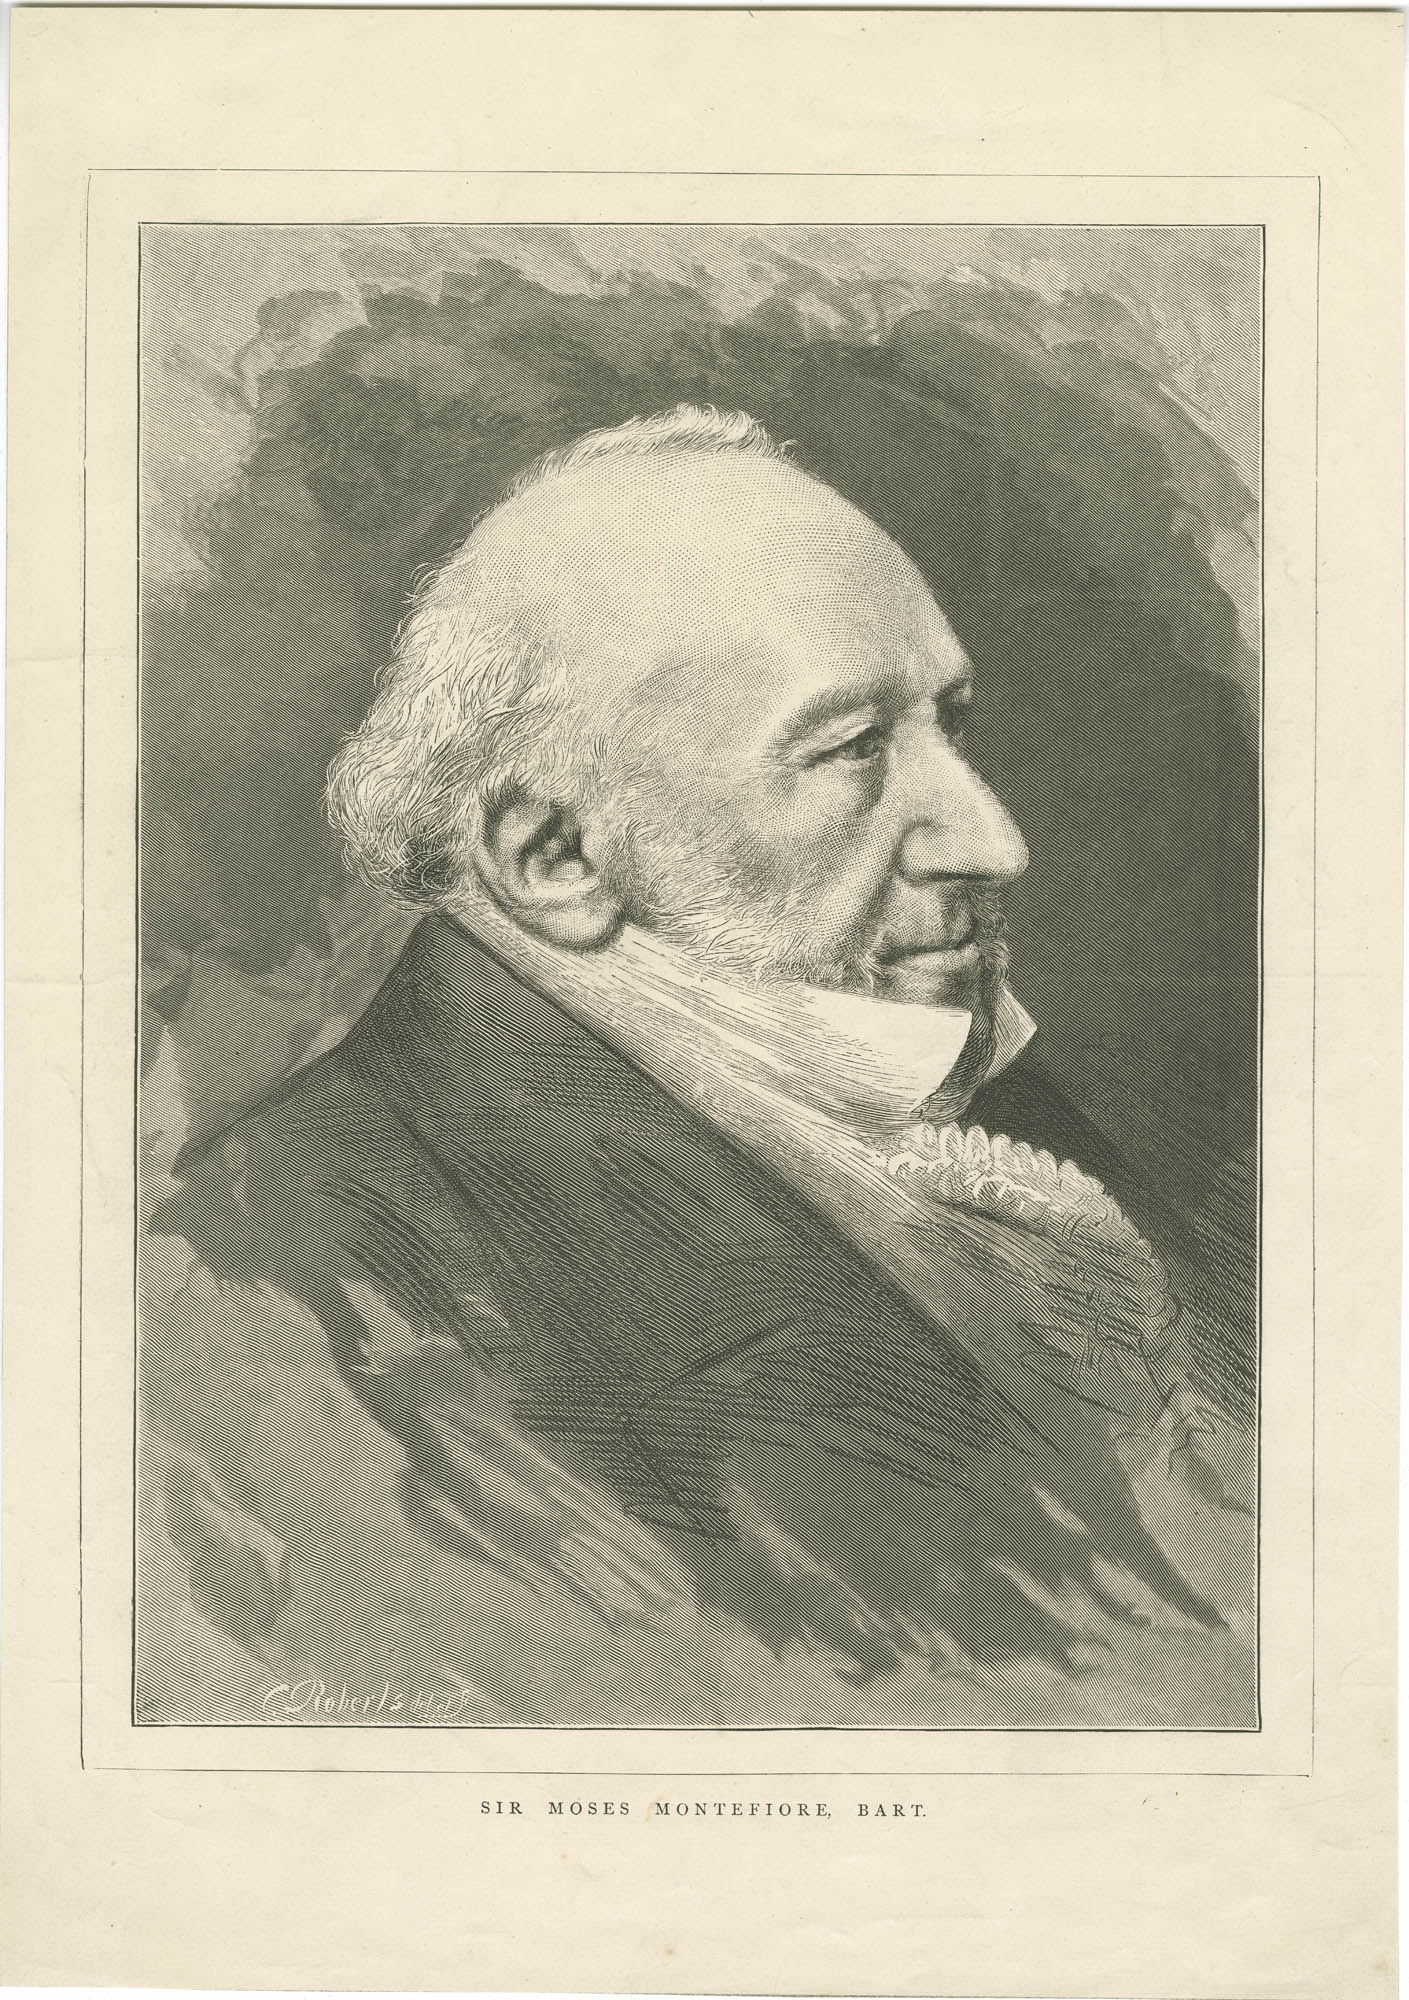 Sir Moses Montefiore, Bart.